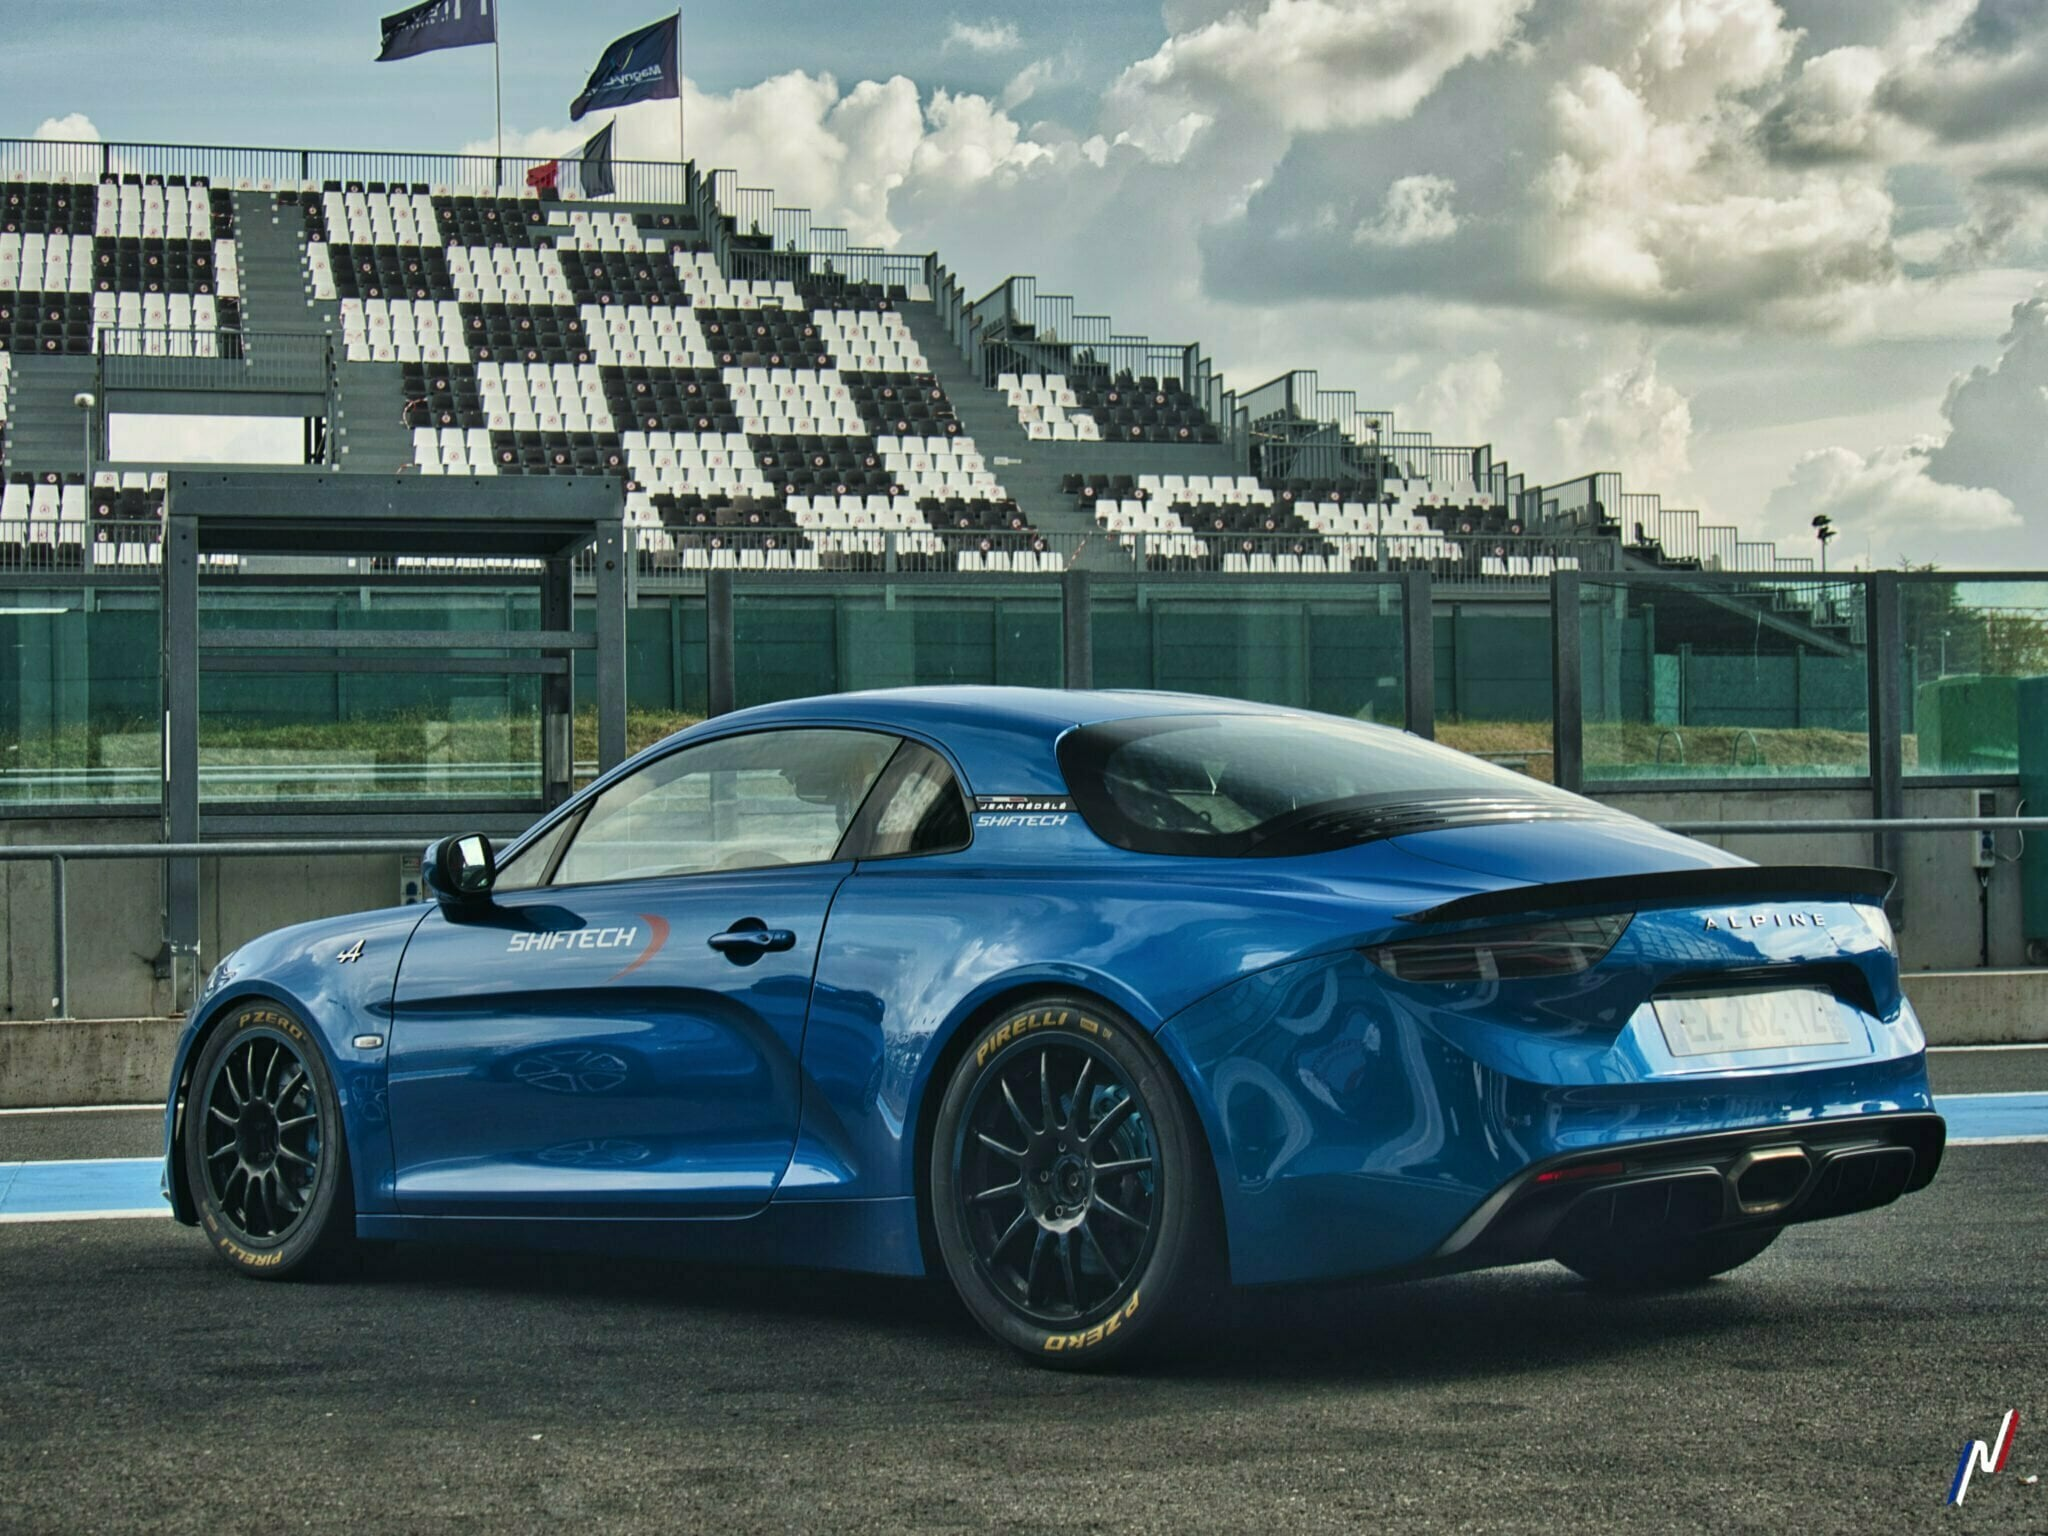 Motorsport Mag Track Day Magny Cours Alpine A110  P1110042 Alpine Planet | Track Day Motorsport 2020 : Magny-Cours, des Alpine et du fun !